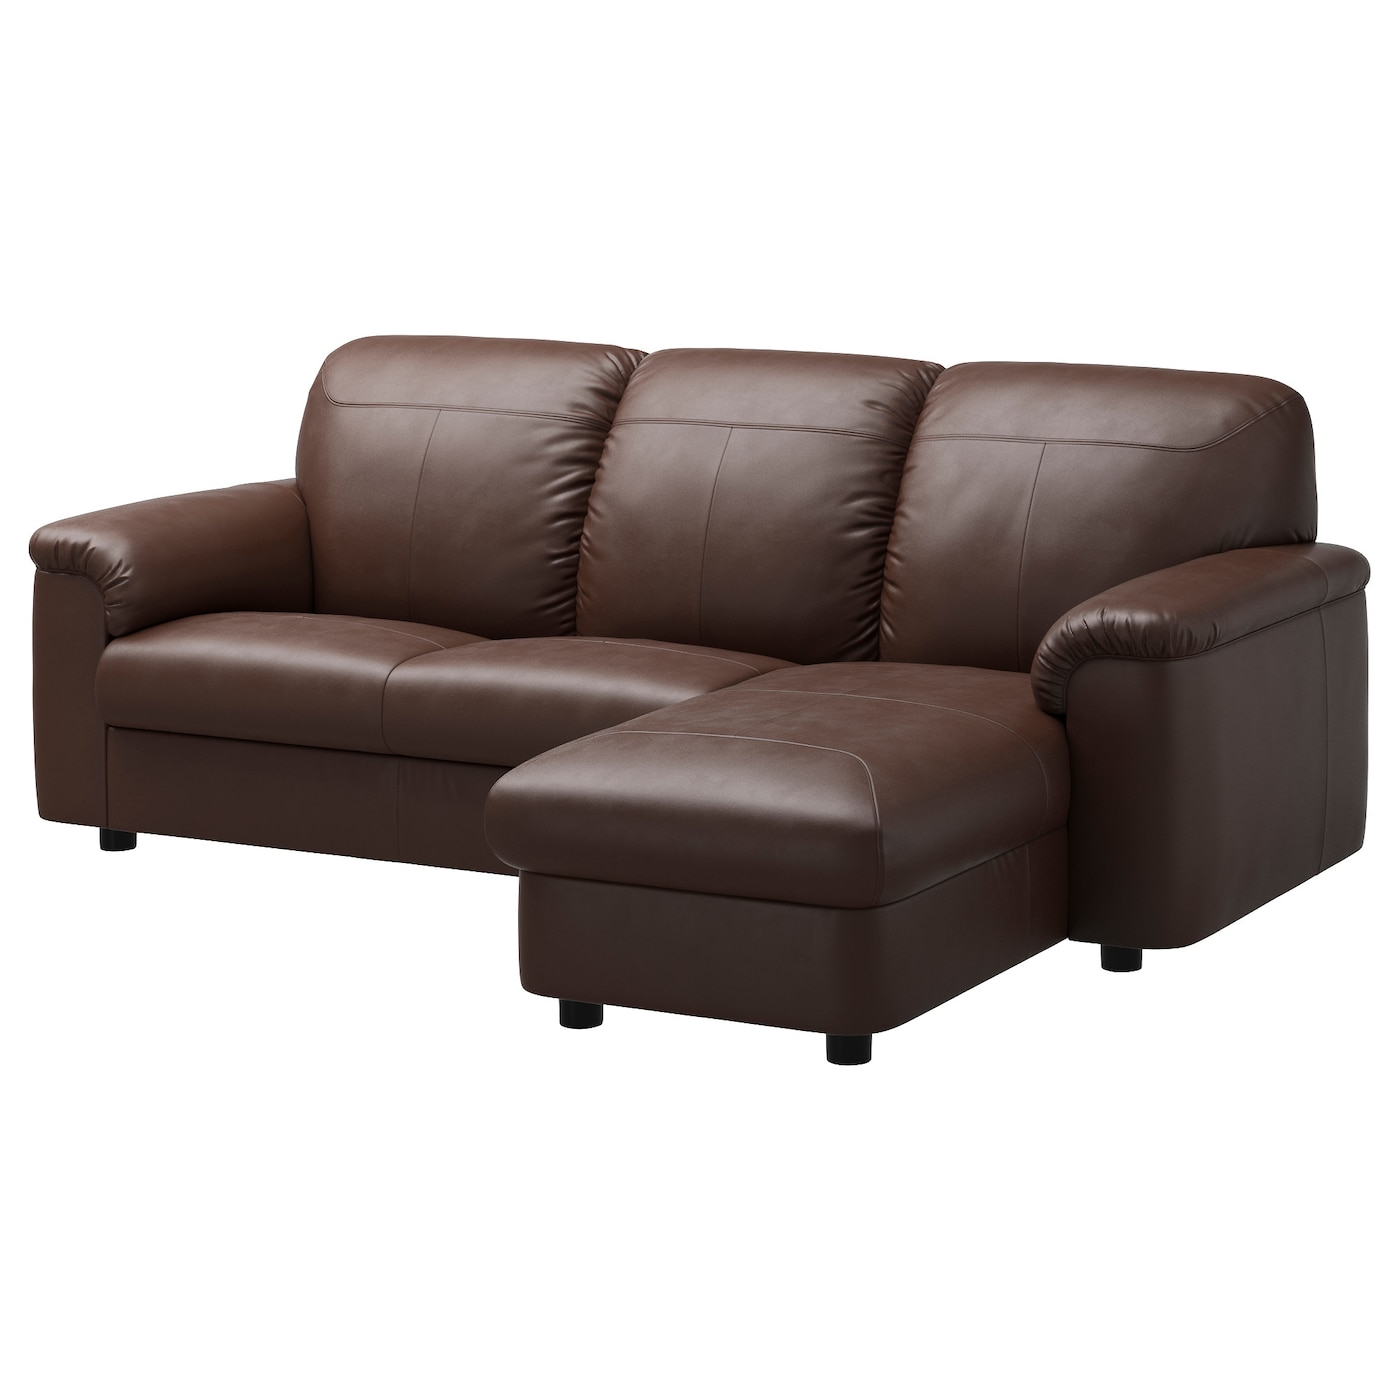 TIMSFORS Twoseat sofa with chaise longue Mjukkimstad dark brown